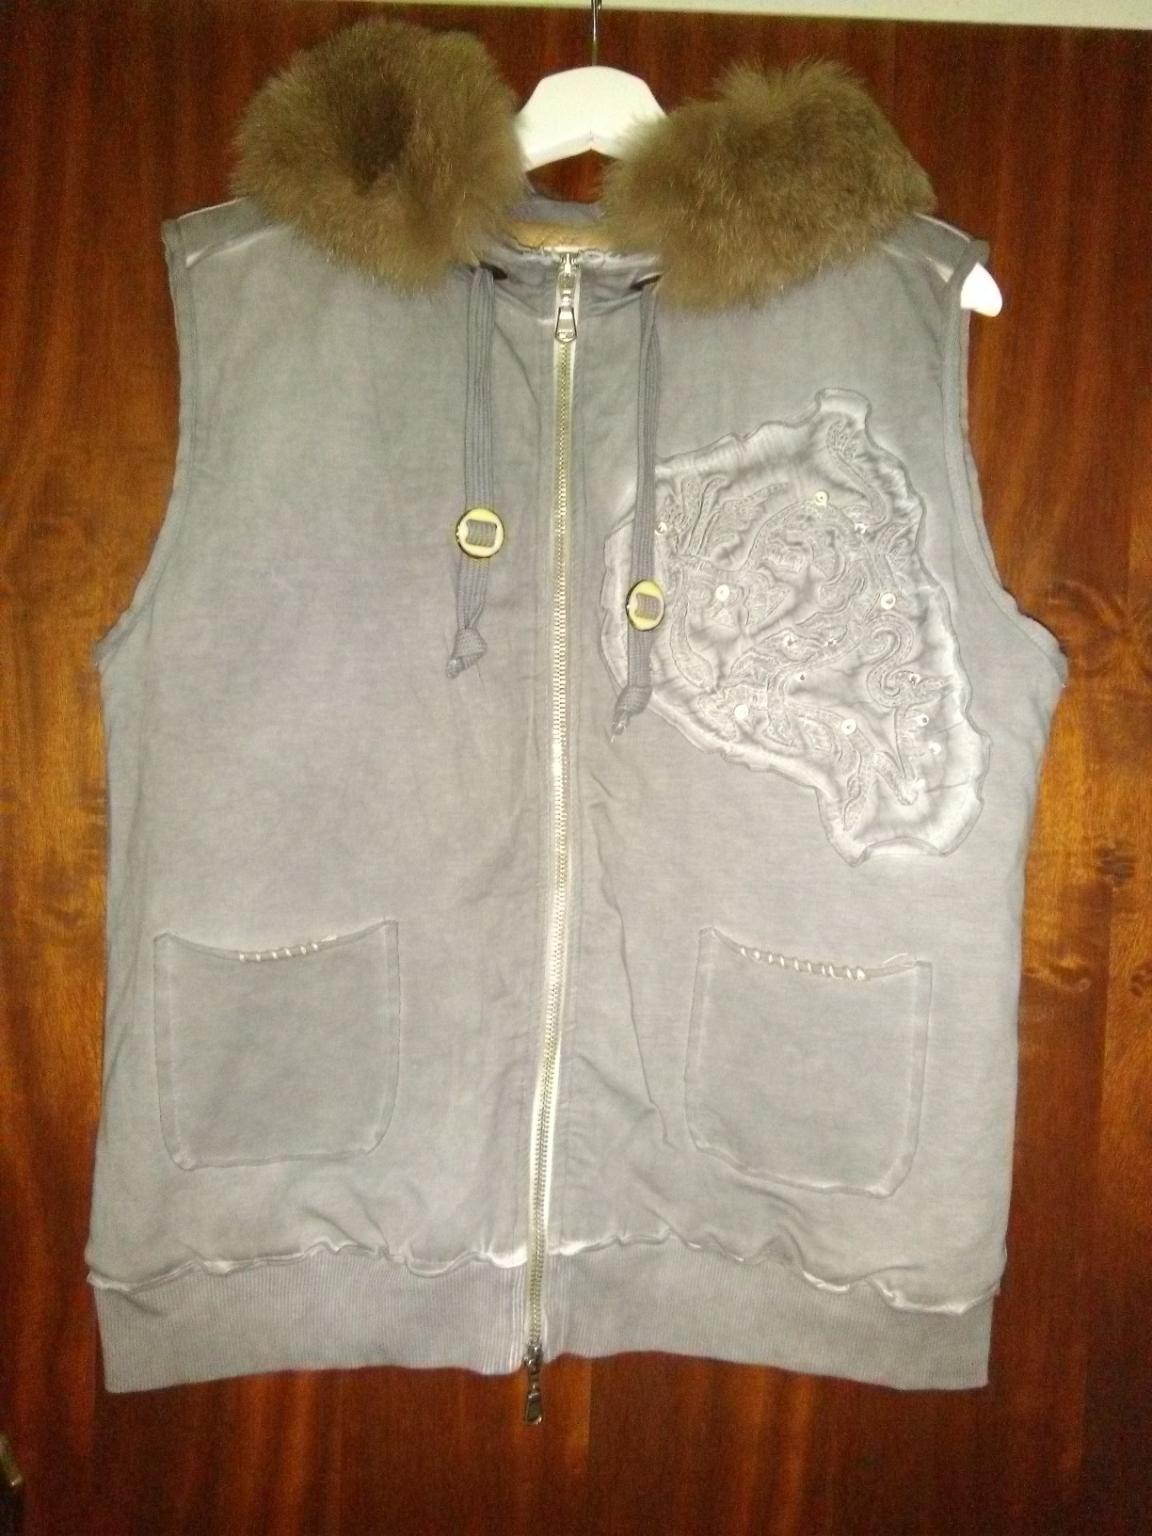 Mantel Moncler 2 in 5400 Hallein for €300.00 for sale   Shpock